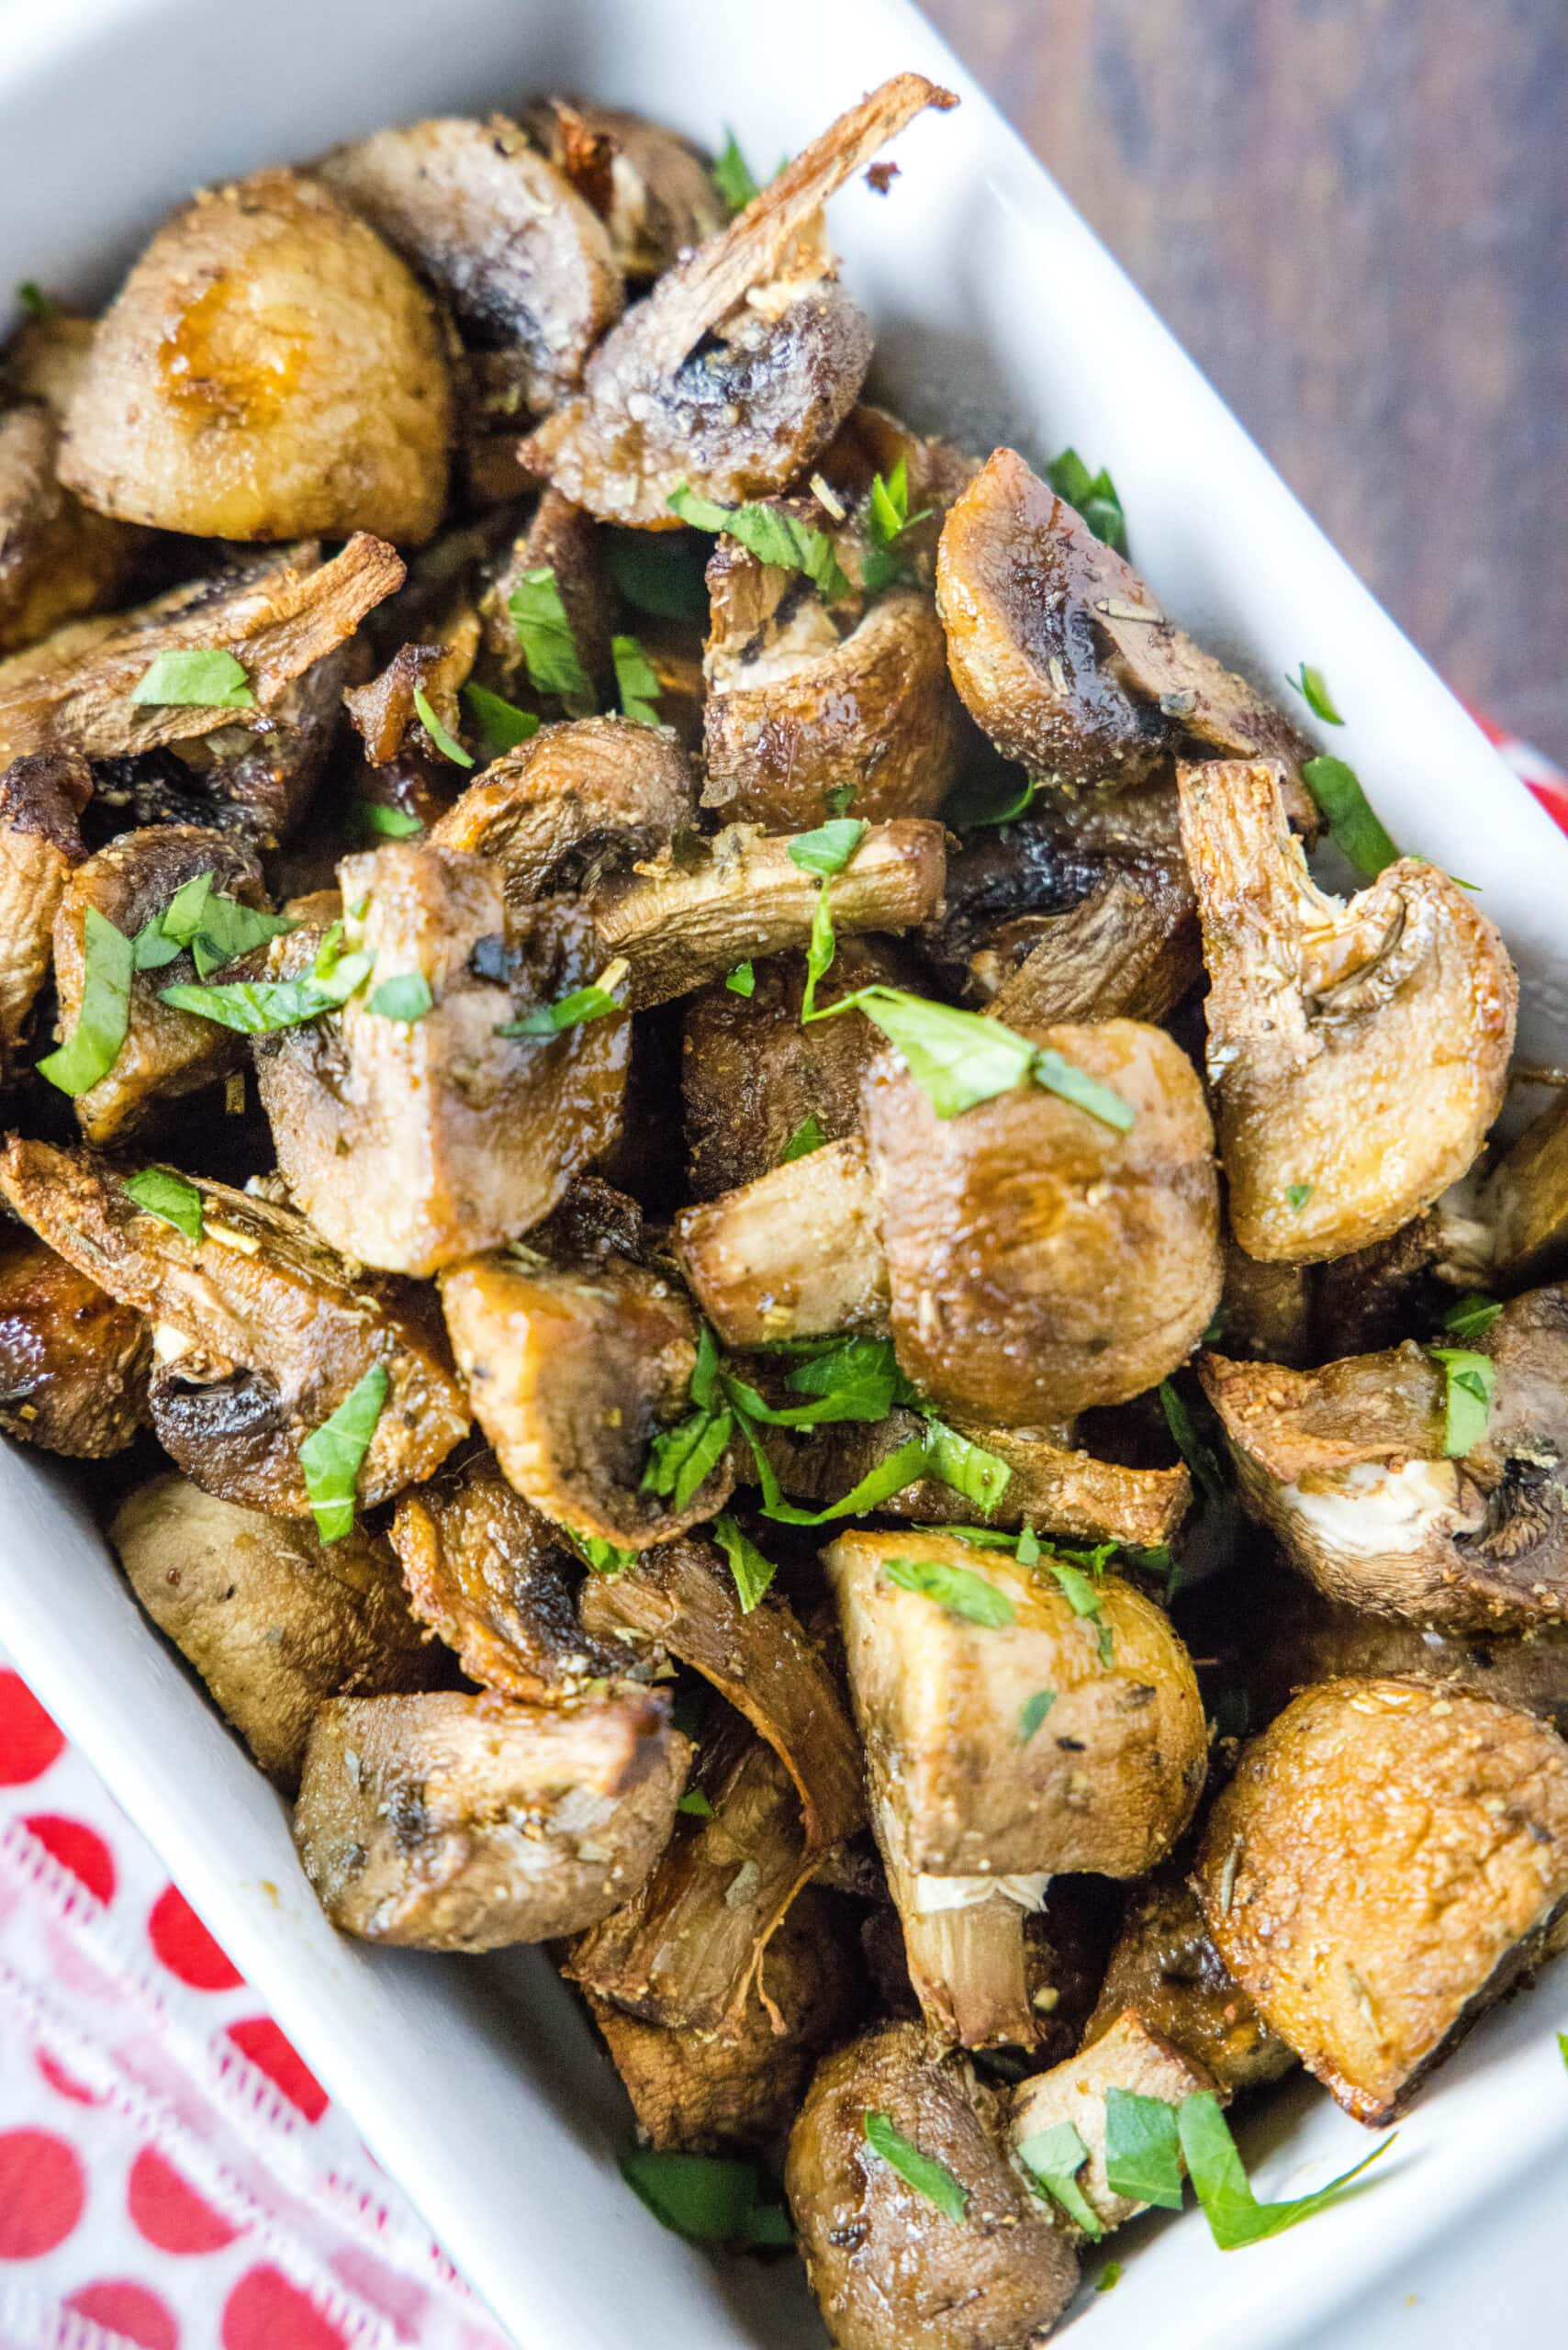 mushrooms in a dish topped with parsley